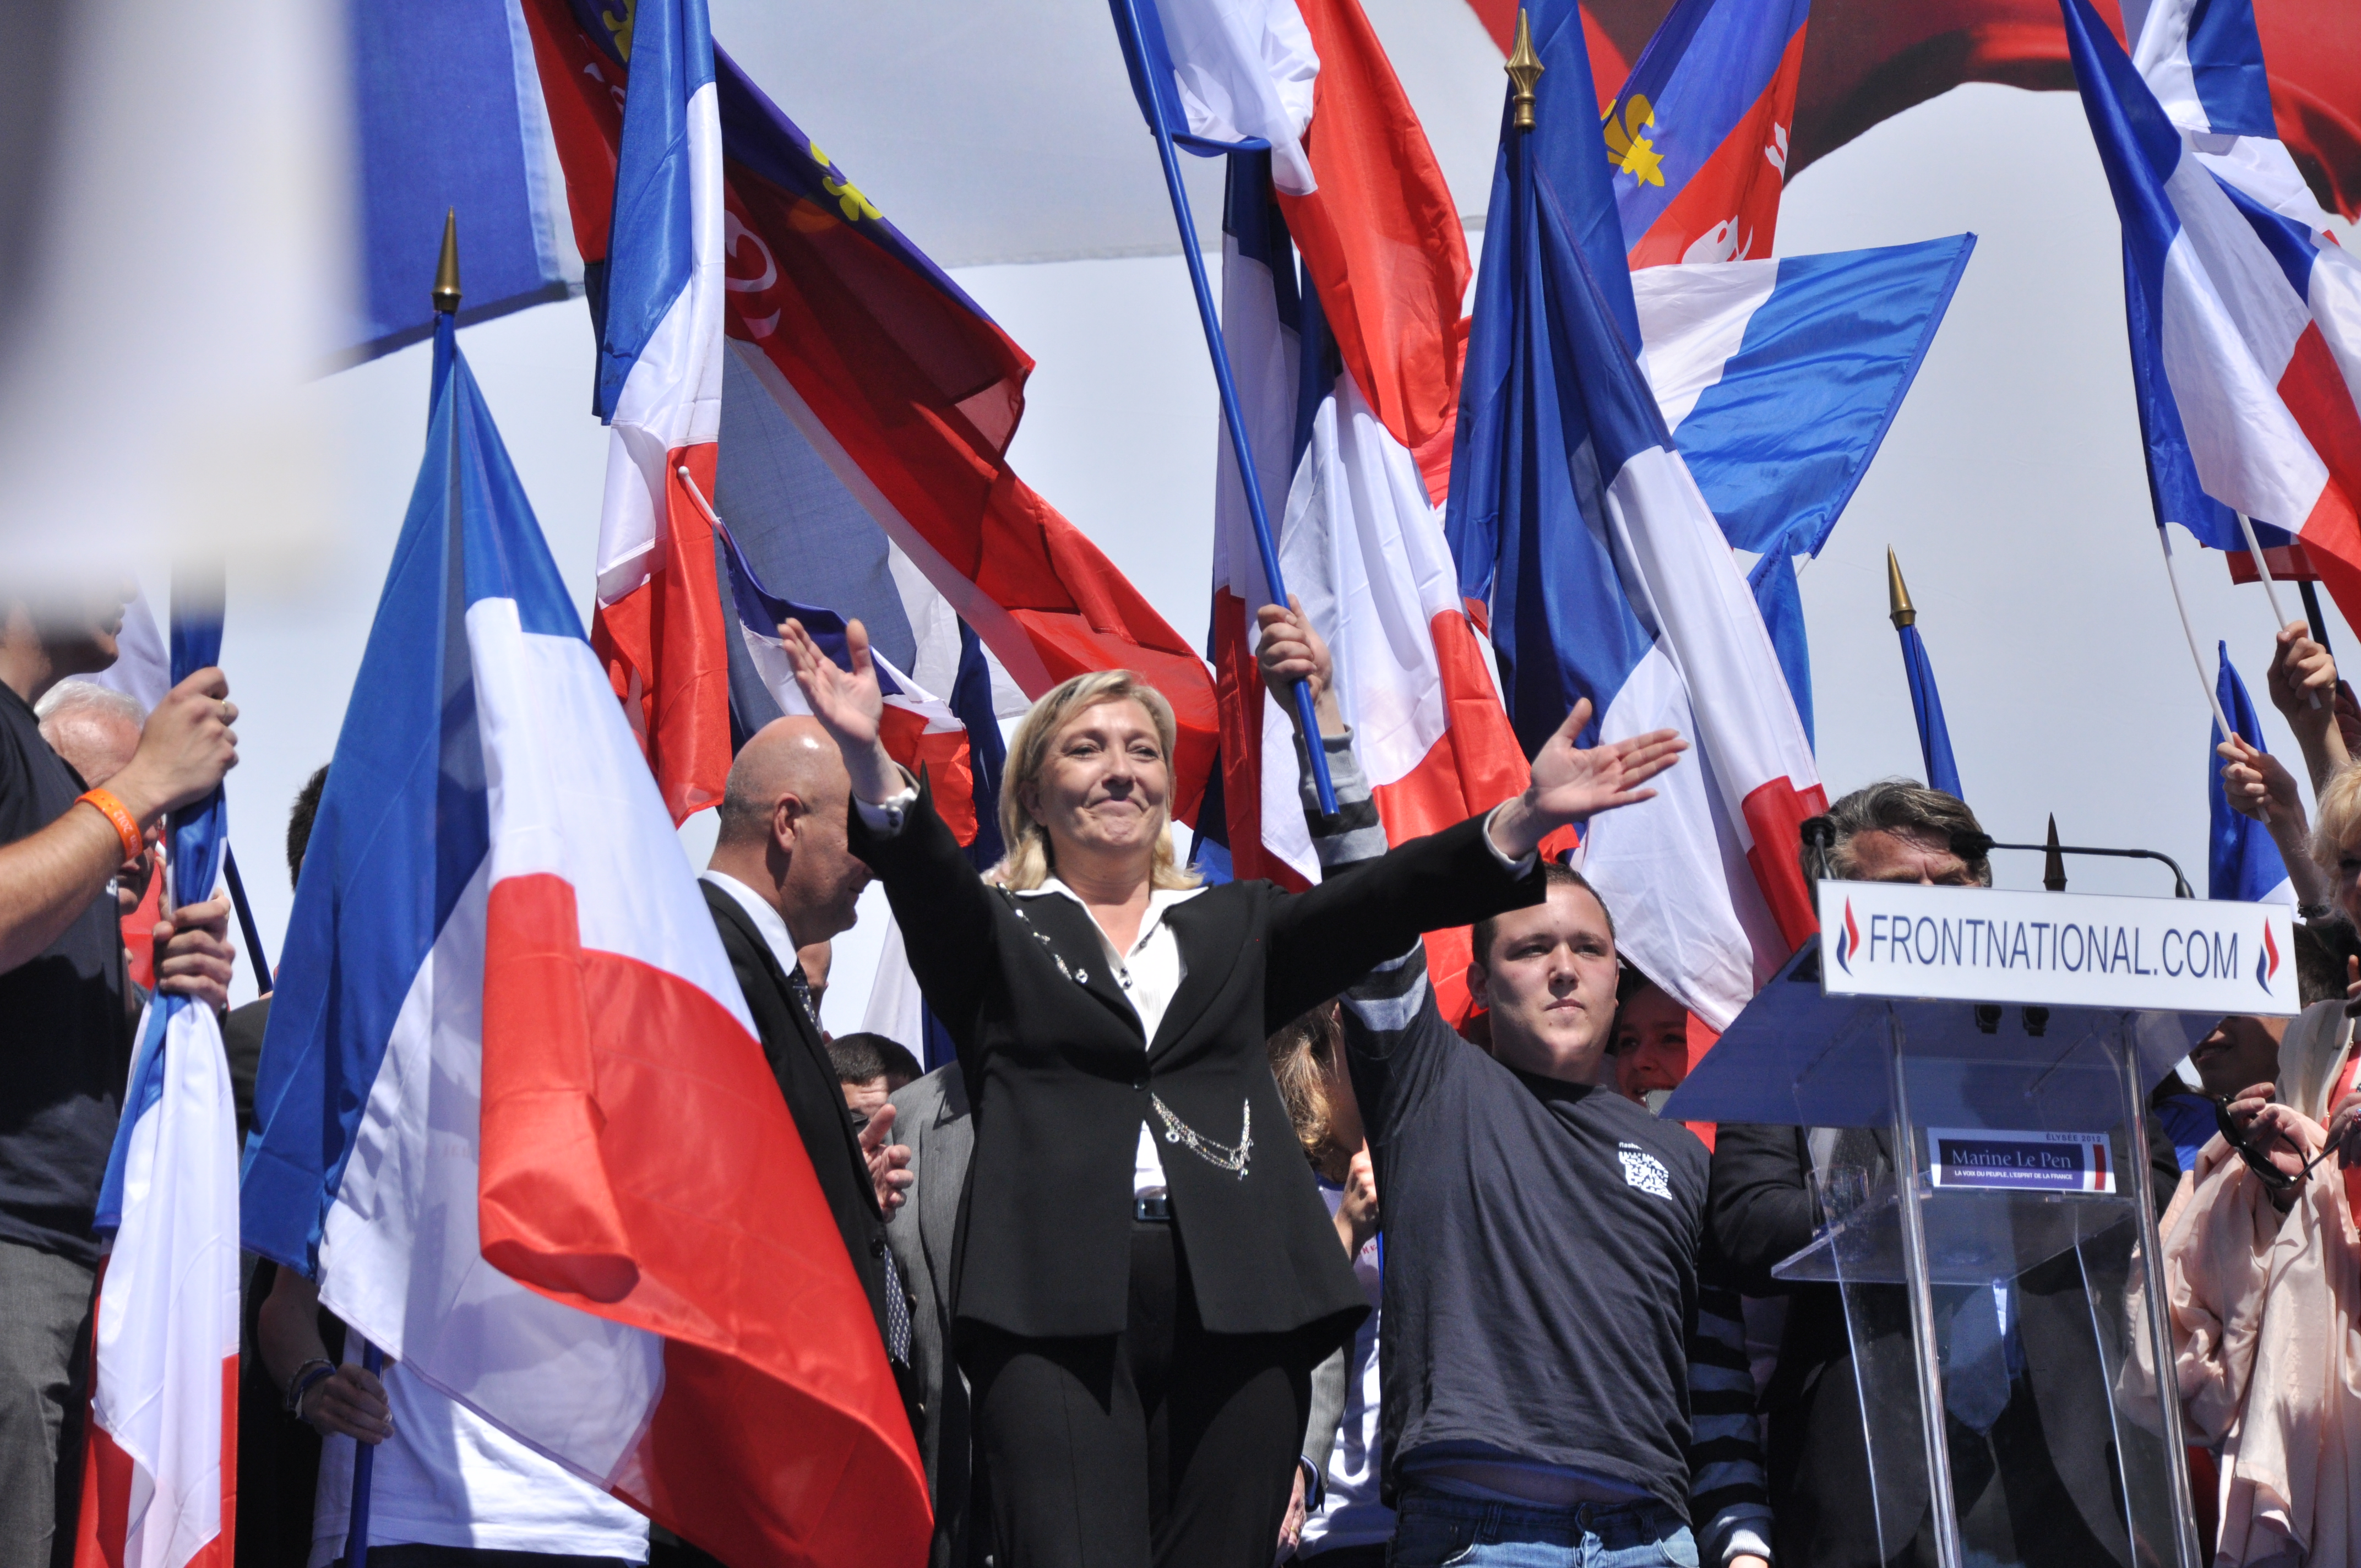 POLL: Does Marine Le Pen's Electoral Success Thus Far Make You Worried For French Muslims?